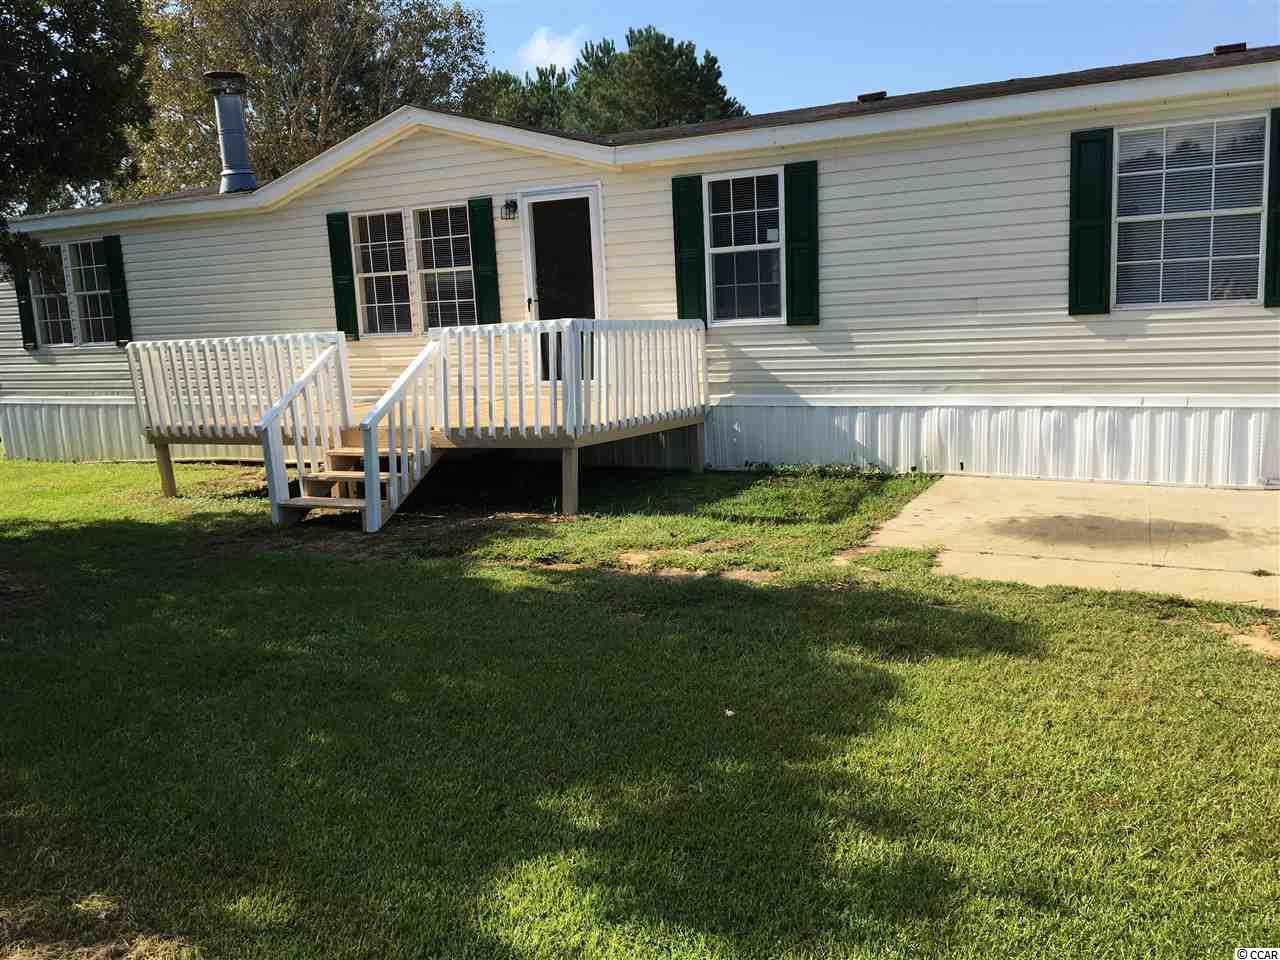 Beautiful home on the lake with a large living room with a fireplace. Large front porch to stretch out and relax or go fishing behind the house.